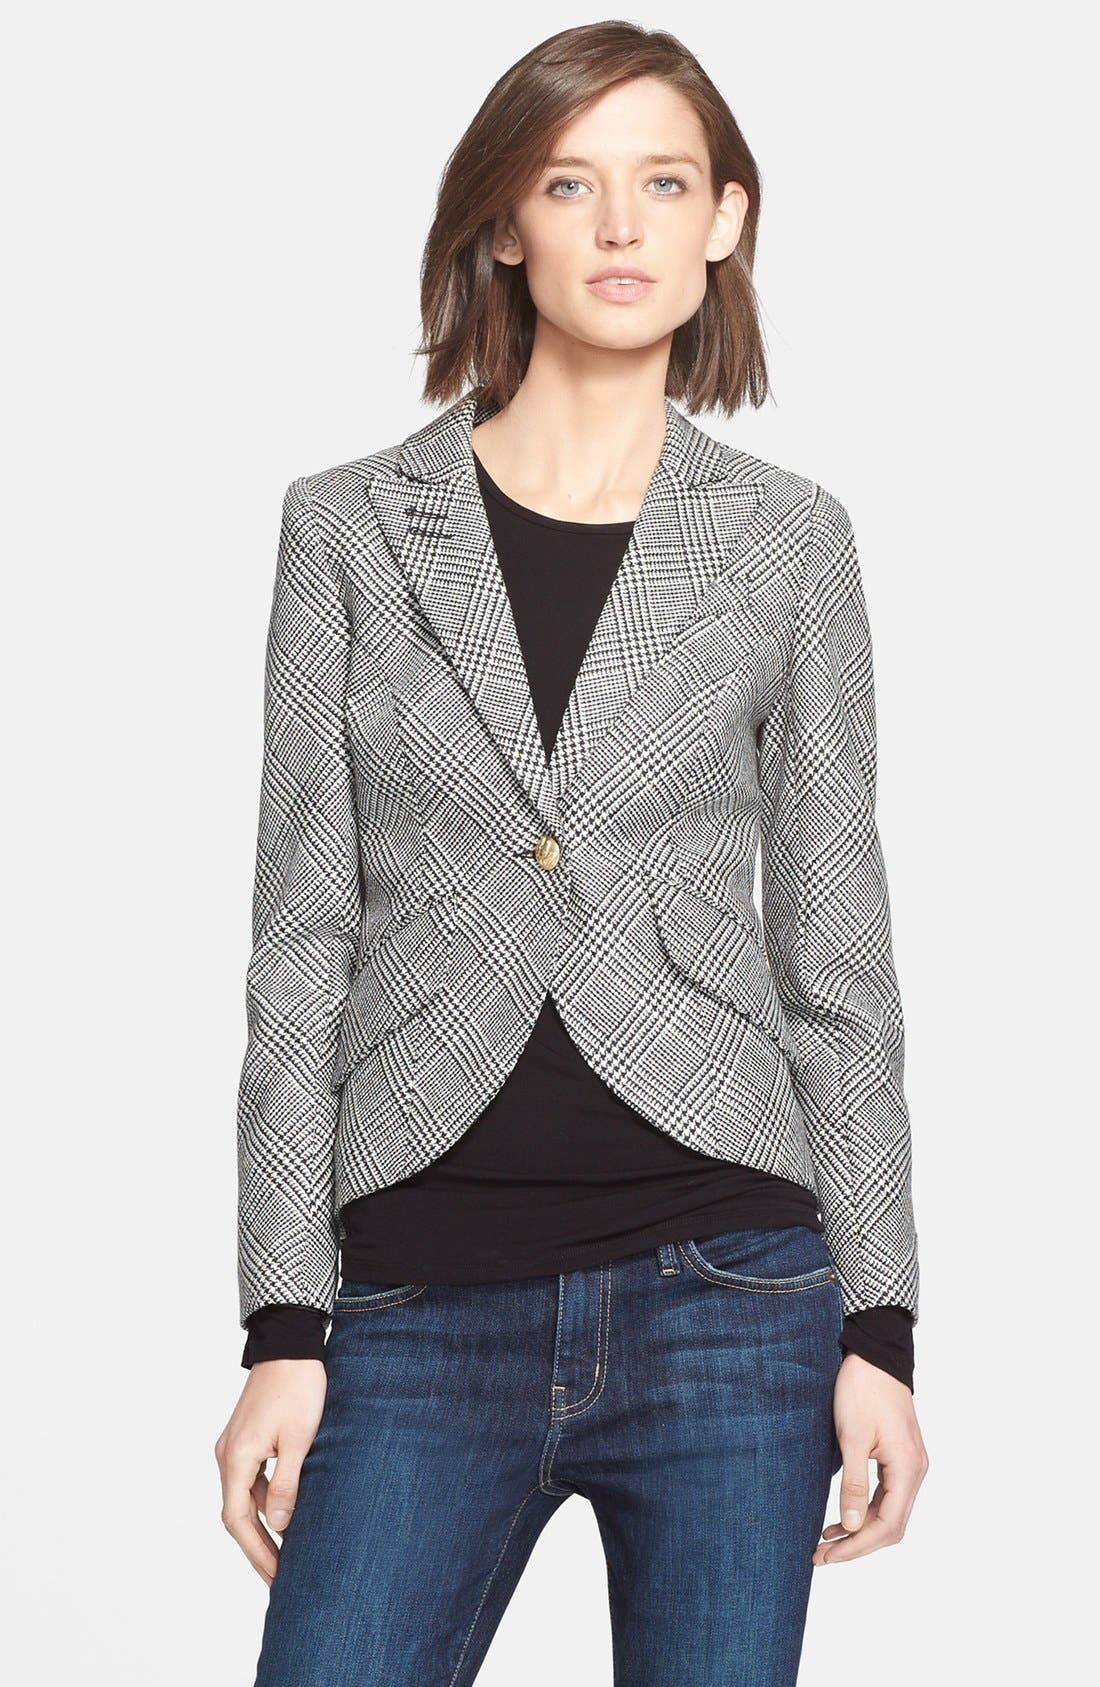 SMYTHE, Leather Elbow Patch Houndstooth Jacket, Alternate thumbnail 5, color, 020